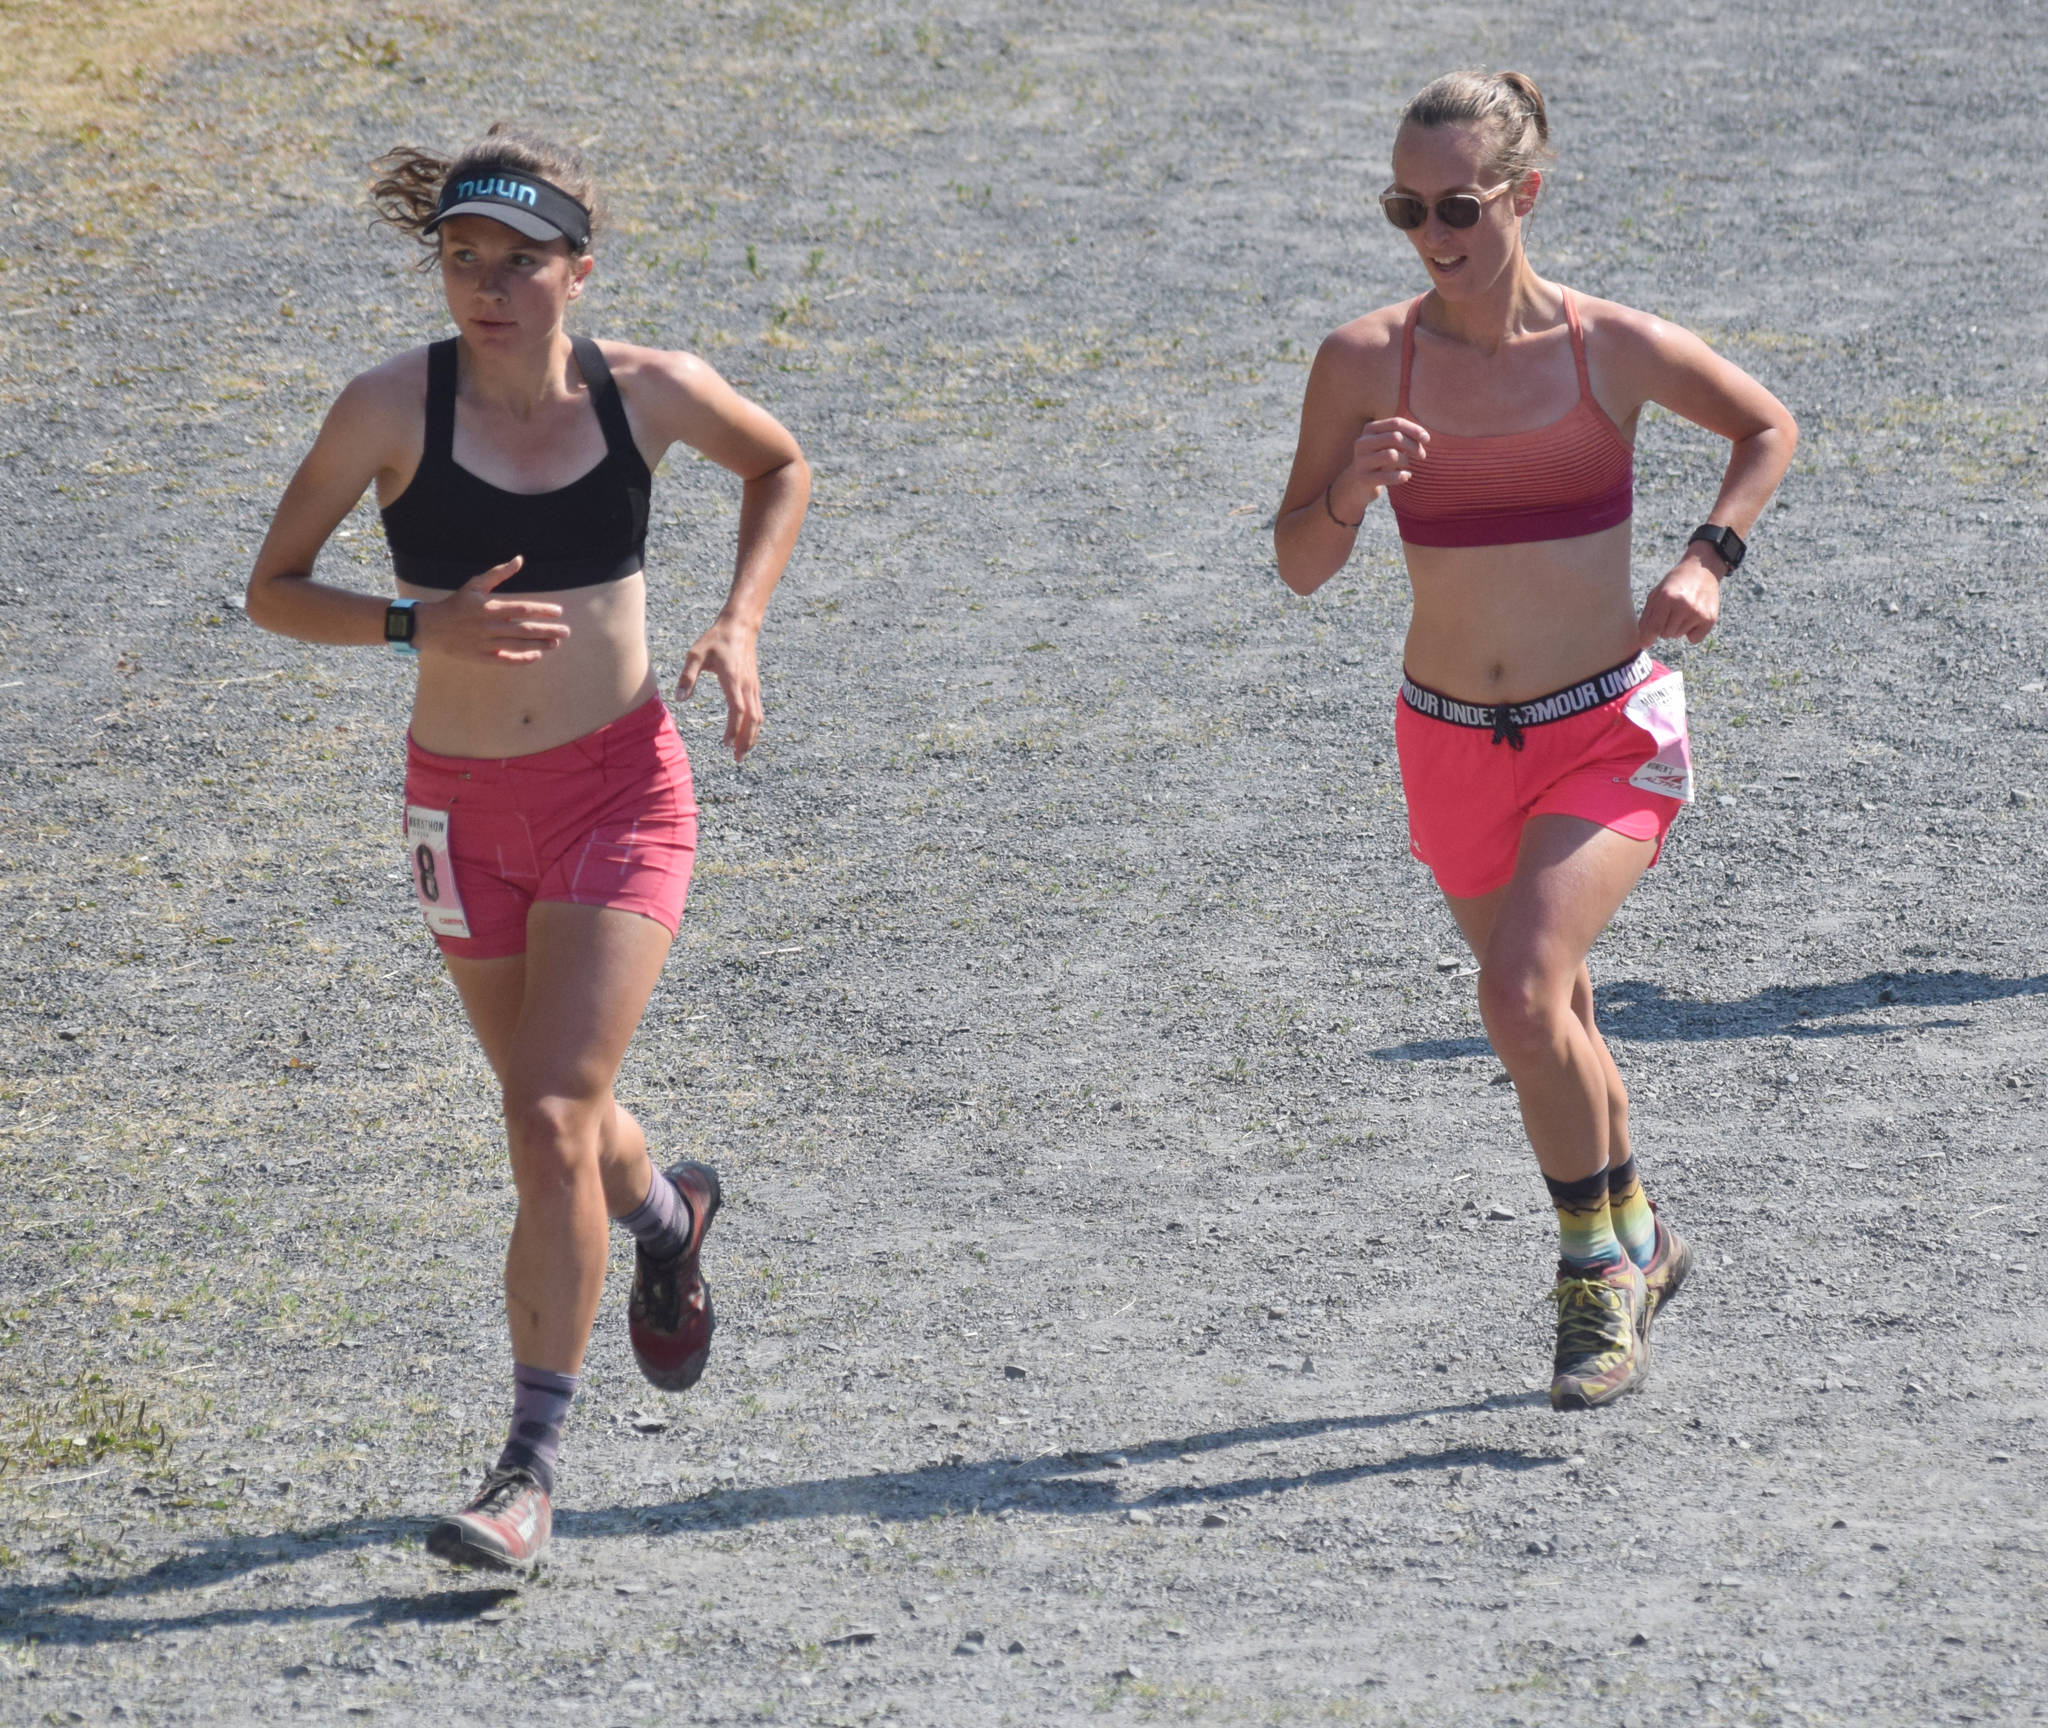 Abby Jahn of Anchorage and Allison Barnwell of Seward approach the mountain during the women's Mount Marathon Race on Thursday, July 4, 2019, in Seward, Alaska. (Photo by Jeff Helminiak/Peninsula Clarion)